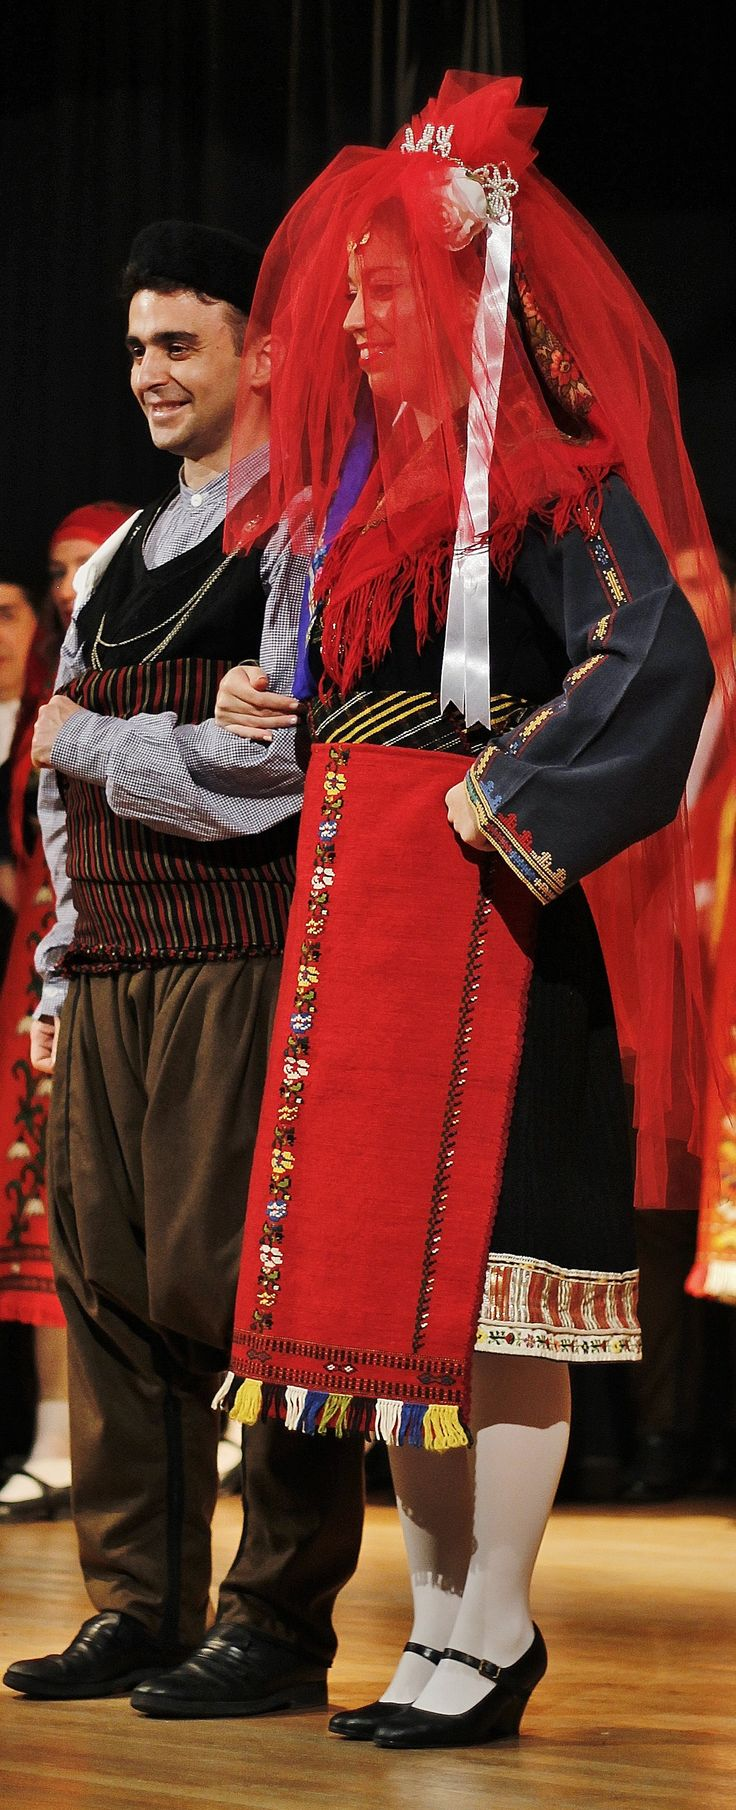 Greek traditional wedding costumes from Kavakli  (now Inzovo, in the Topolovgrad region, southern Bulgaria),  Clothing style: early 20th century.  These are recent workshop-made copies, as worn by folk dance groups.